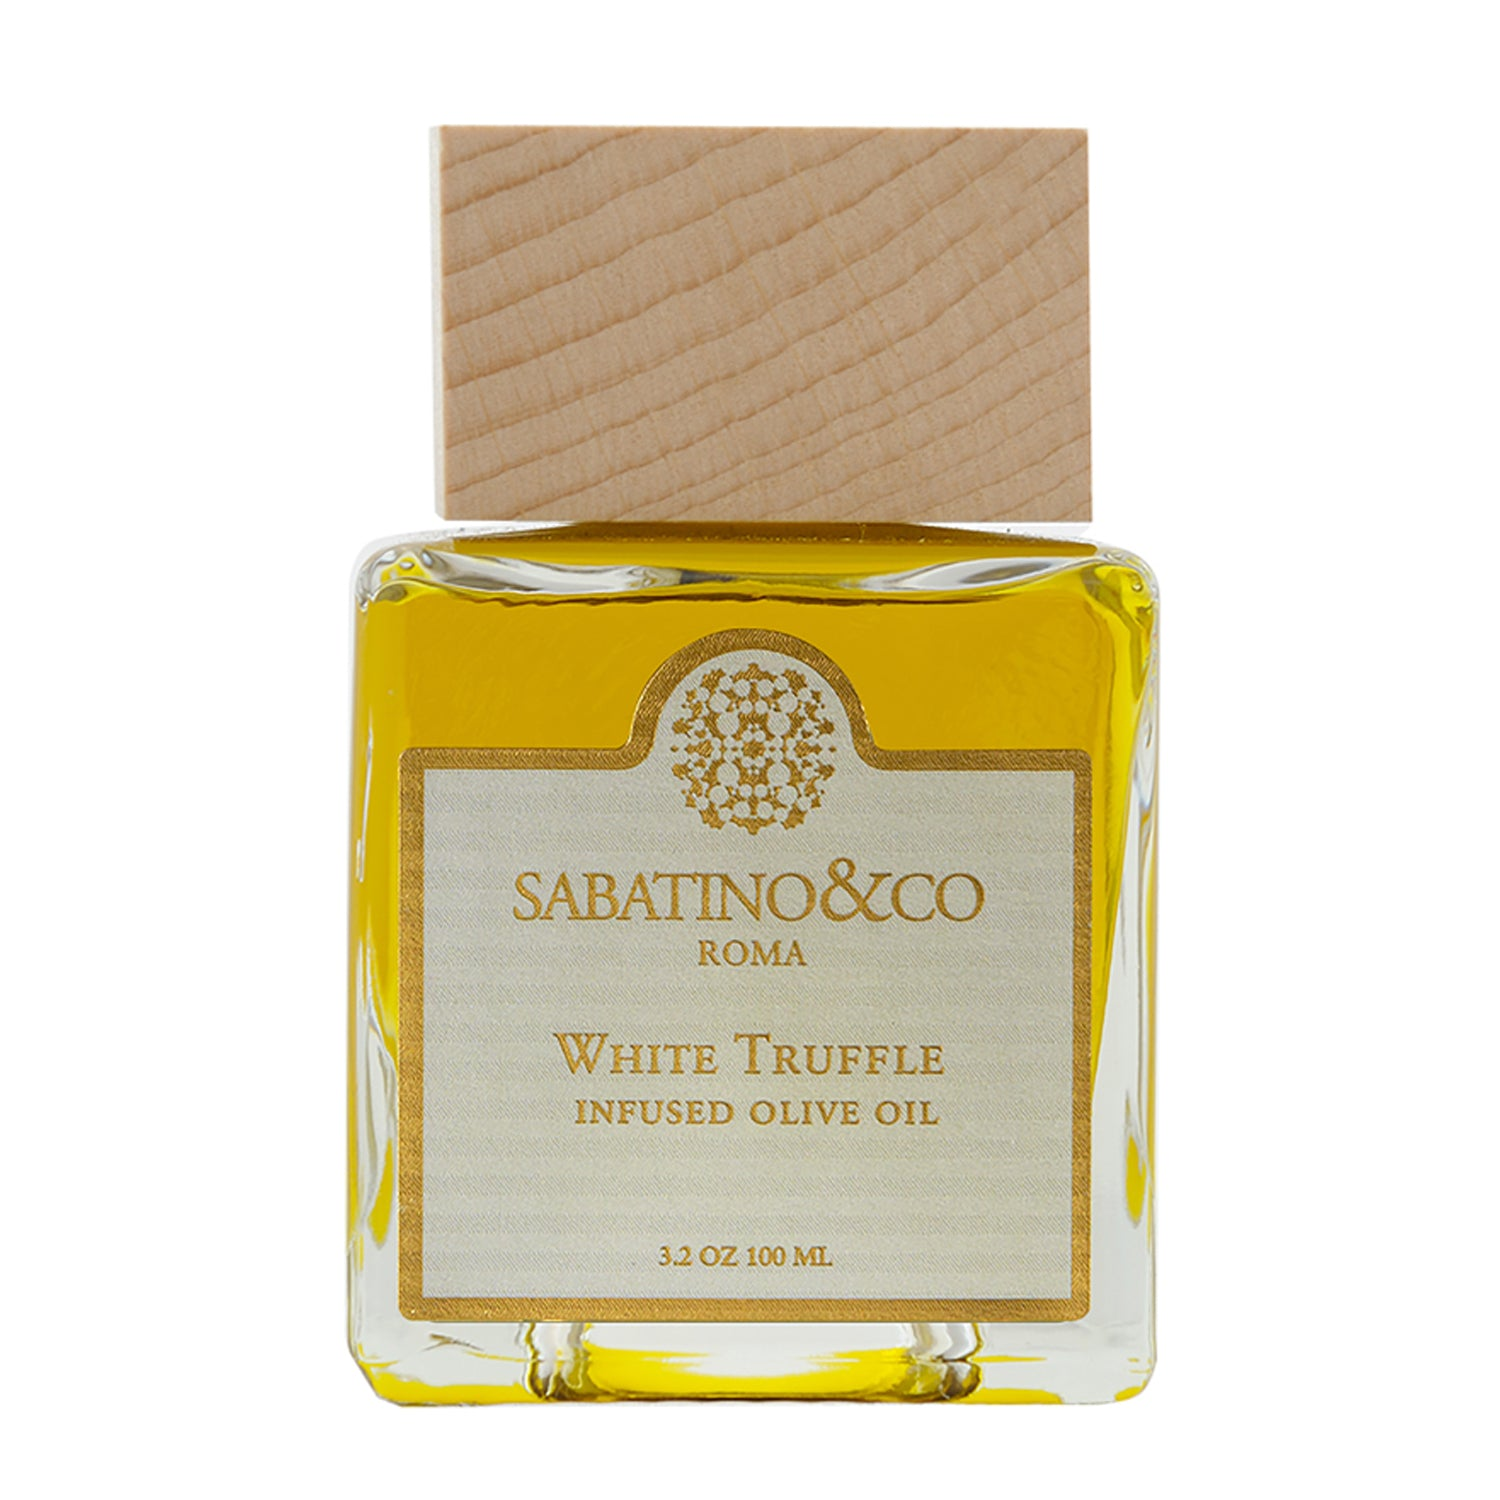 PREMIUM WHITE TRUFFLE OIL- 100TH YEAR COLLECTION - Sabatino Truffles